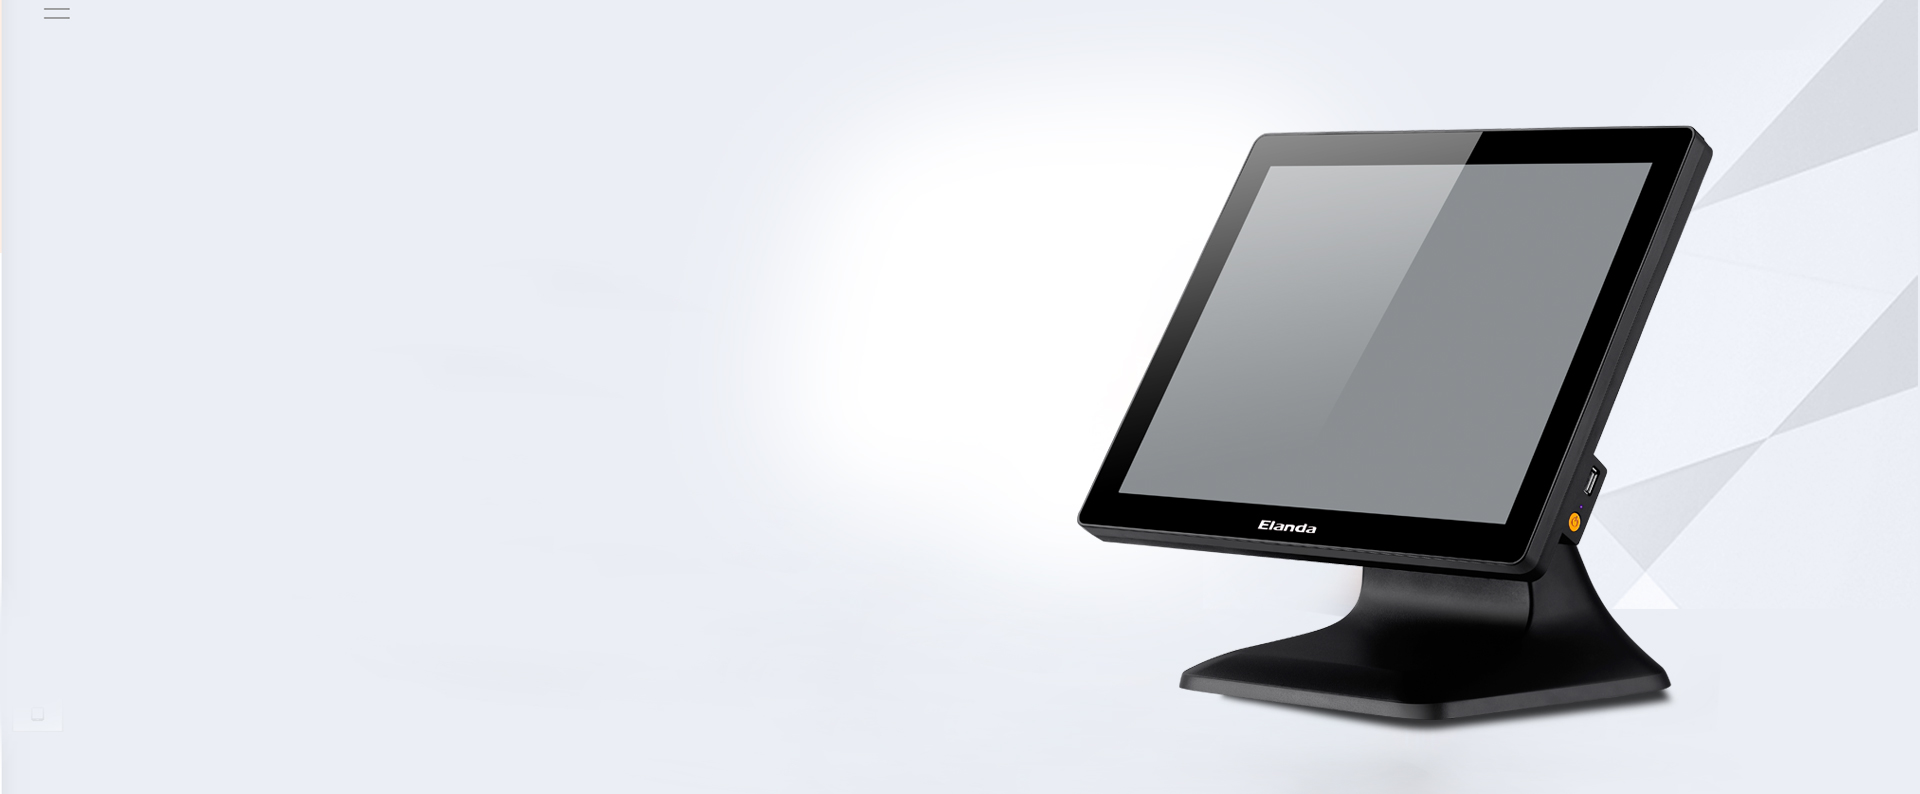 T320plus Flexible and Space Saving Design